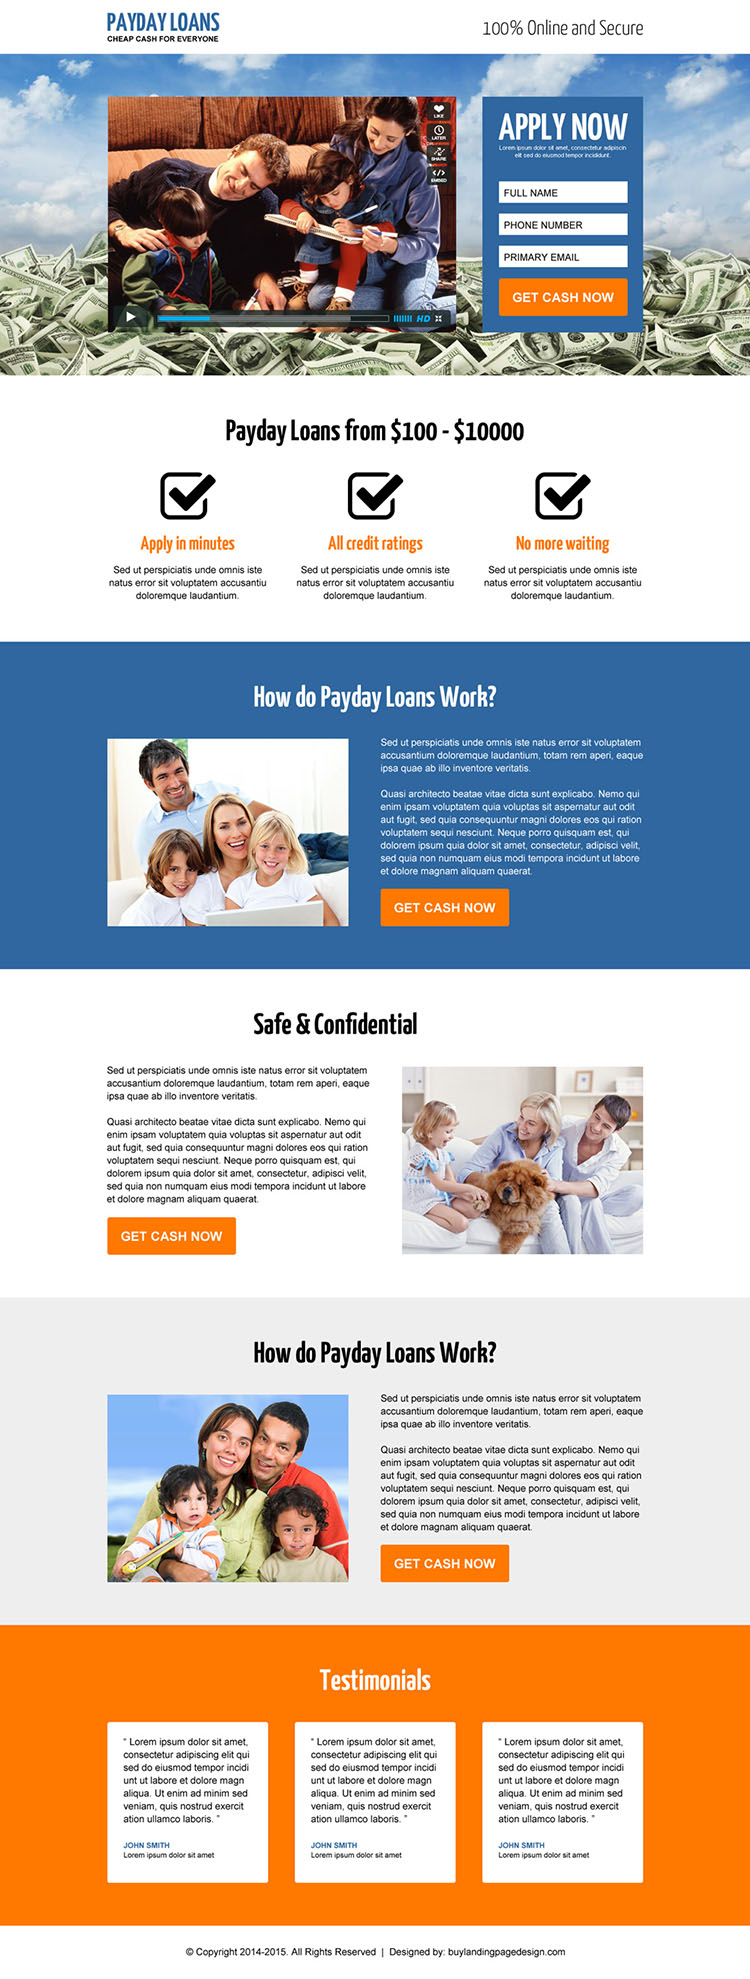 best payday loan video landing page 21 payday loan landing page design preview. Black Bedroom Furniture Sets. Home Design Ideas